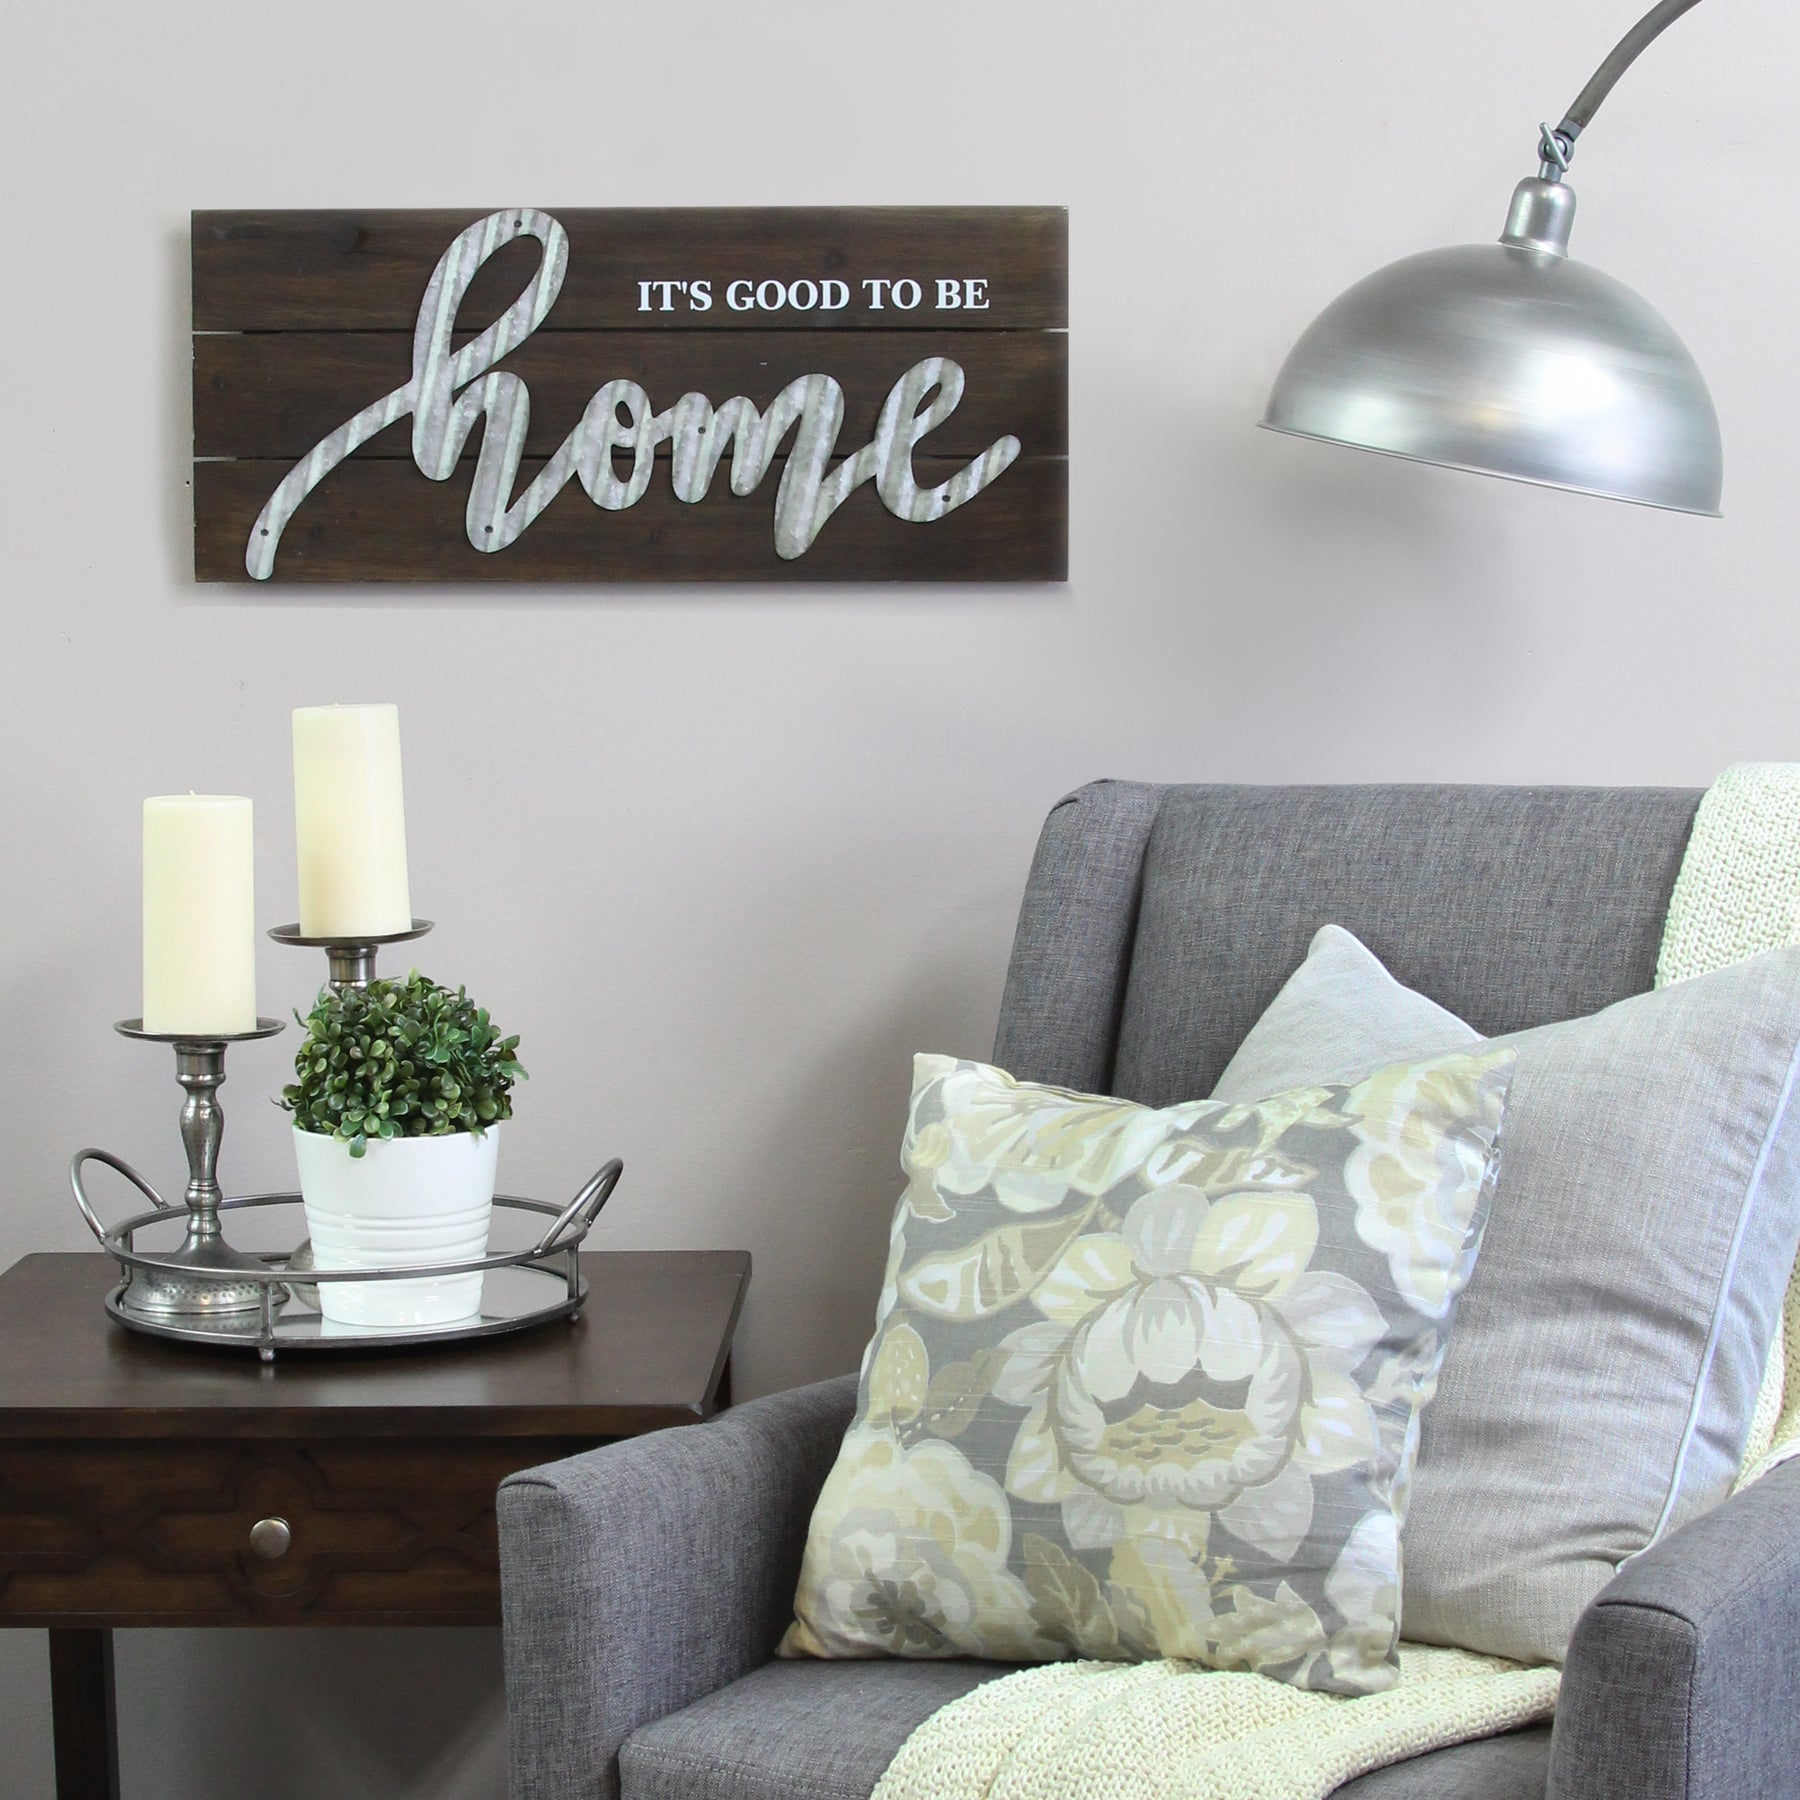 Stratton Home Decor Its Good To Be Wall Art